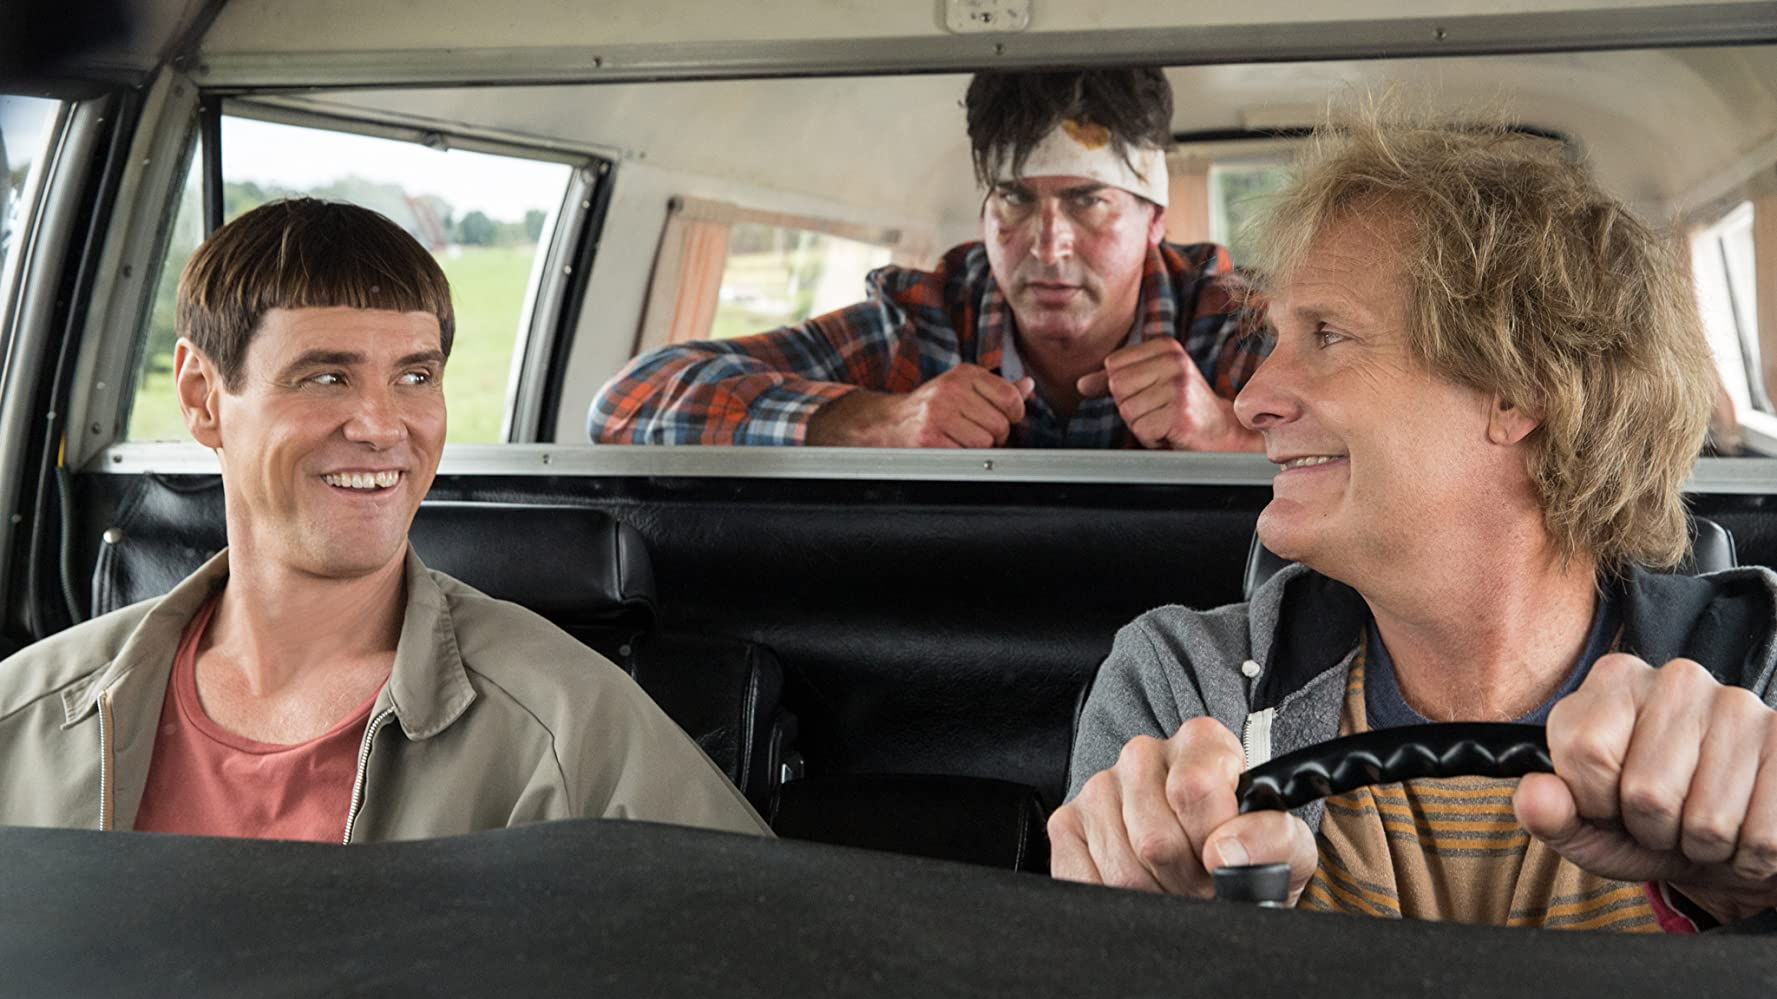 Jim Carrey, Jeff Daniels, and Rob Riggle in Dumb and Dumber To (2014)